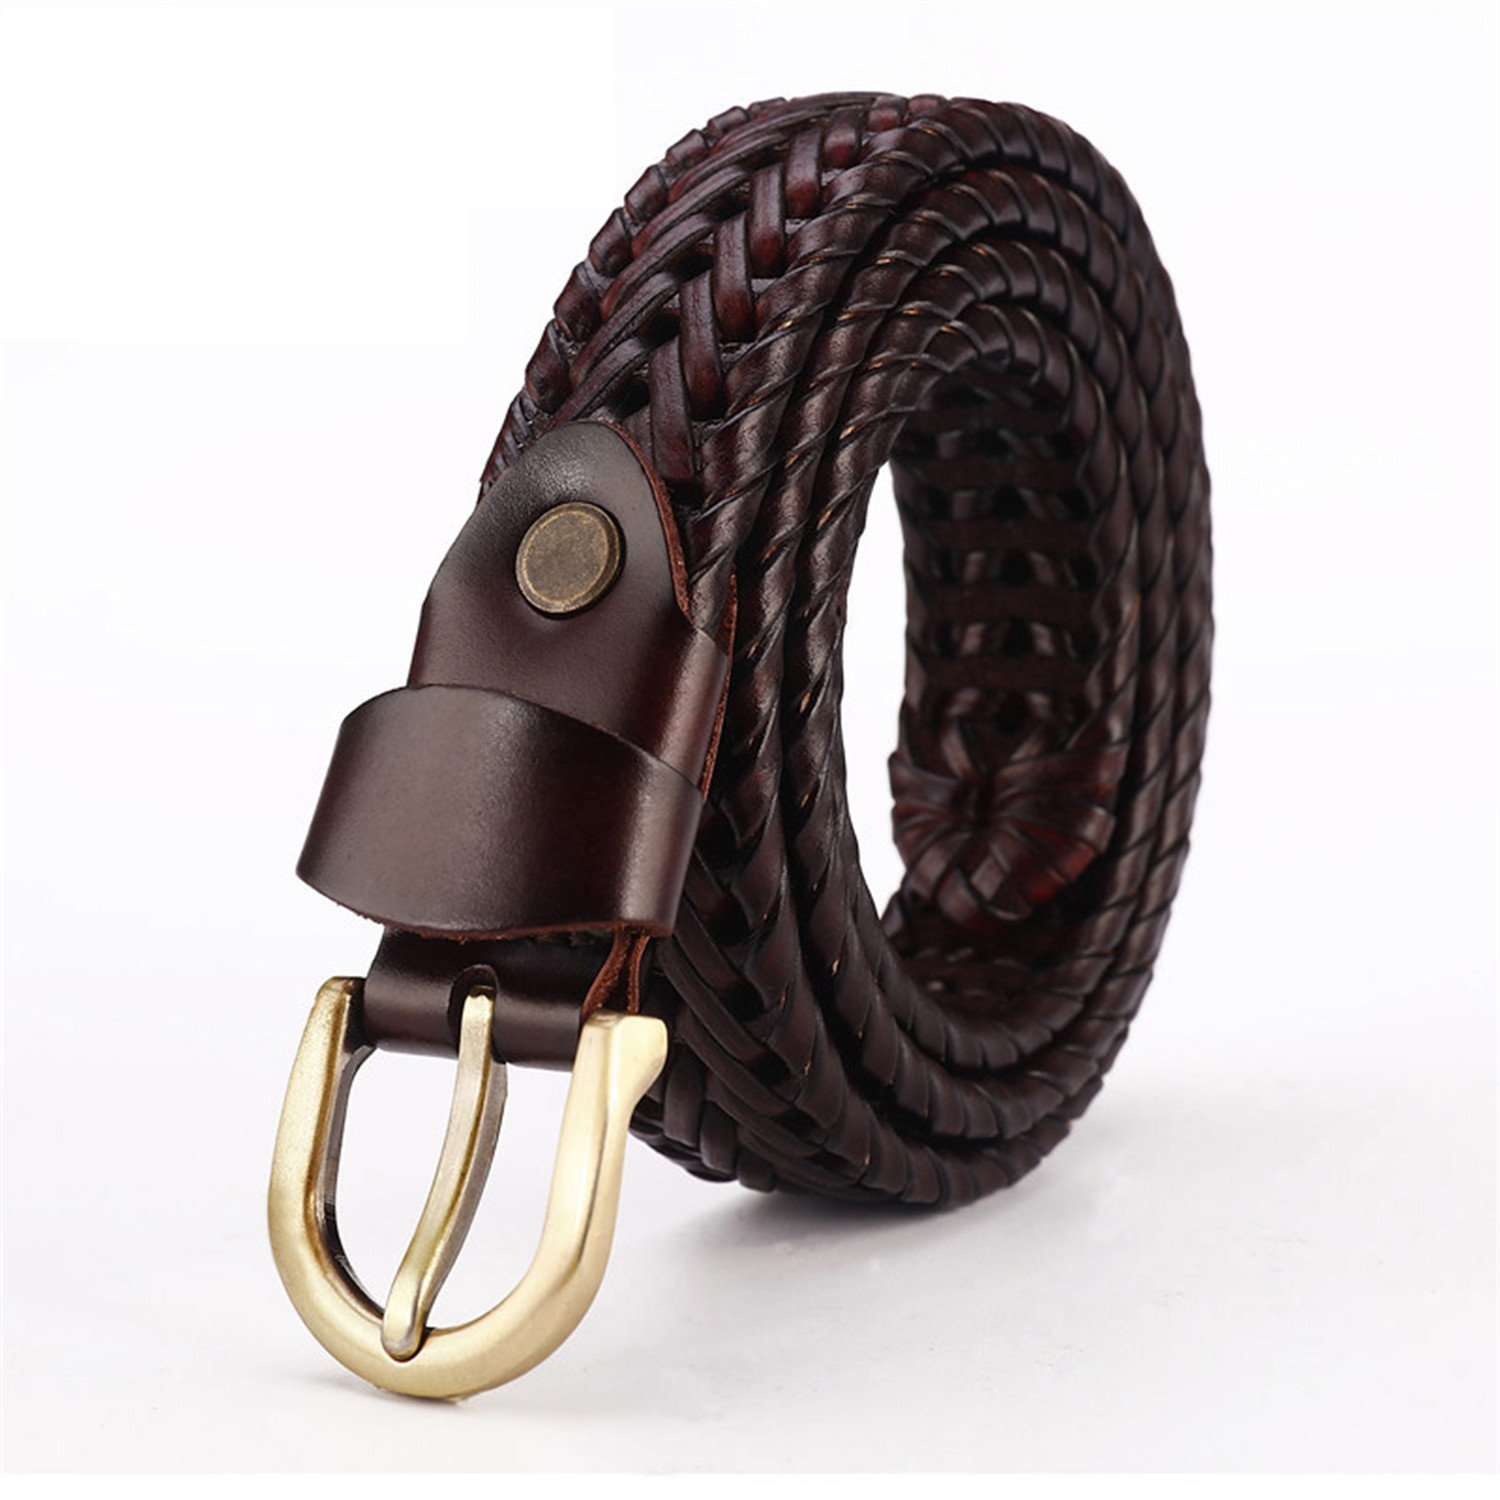 Reinhar Woven belt genuine leather women's straps man belts Wide girdle Male cow skin vintage fashion brand ceinture femme woman coffe 90cm